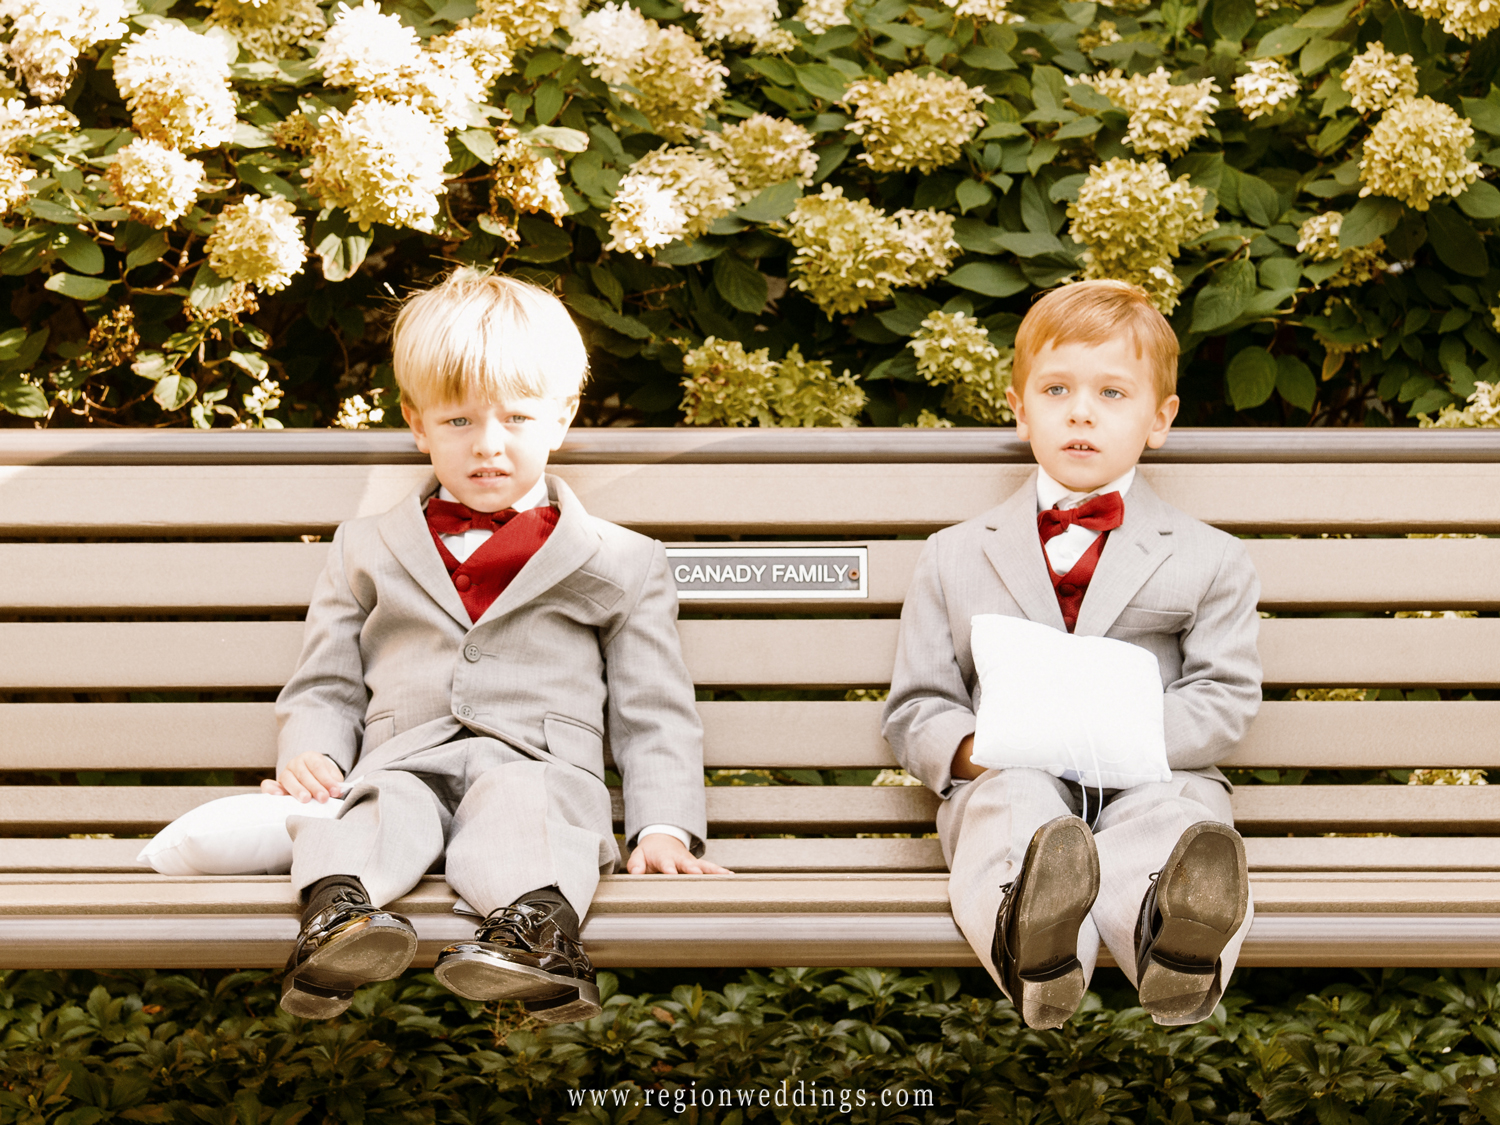 The ring bearers take a rest on wedding day.